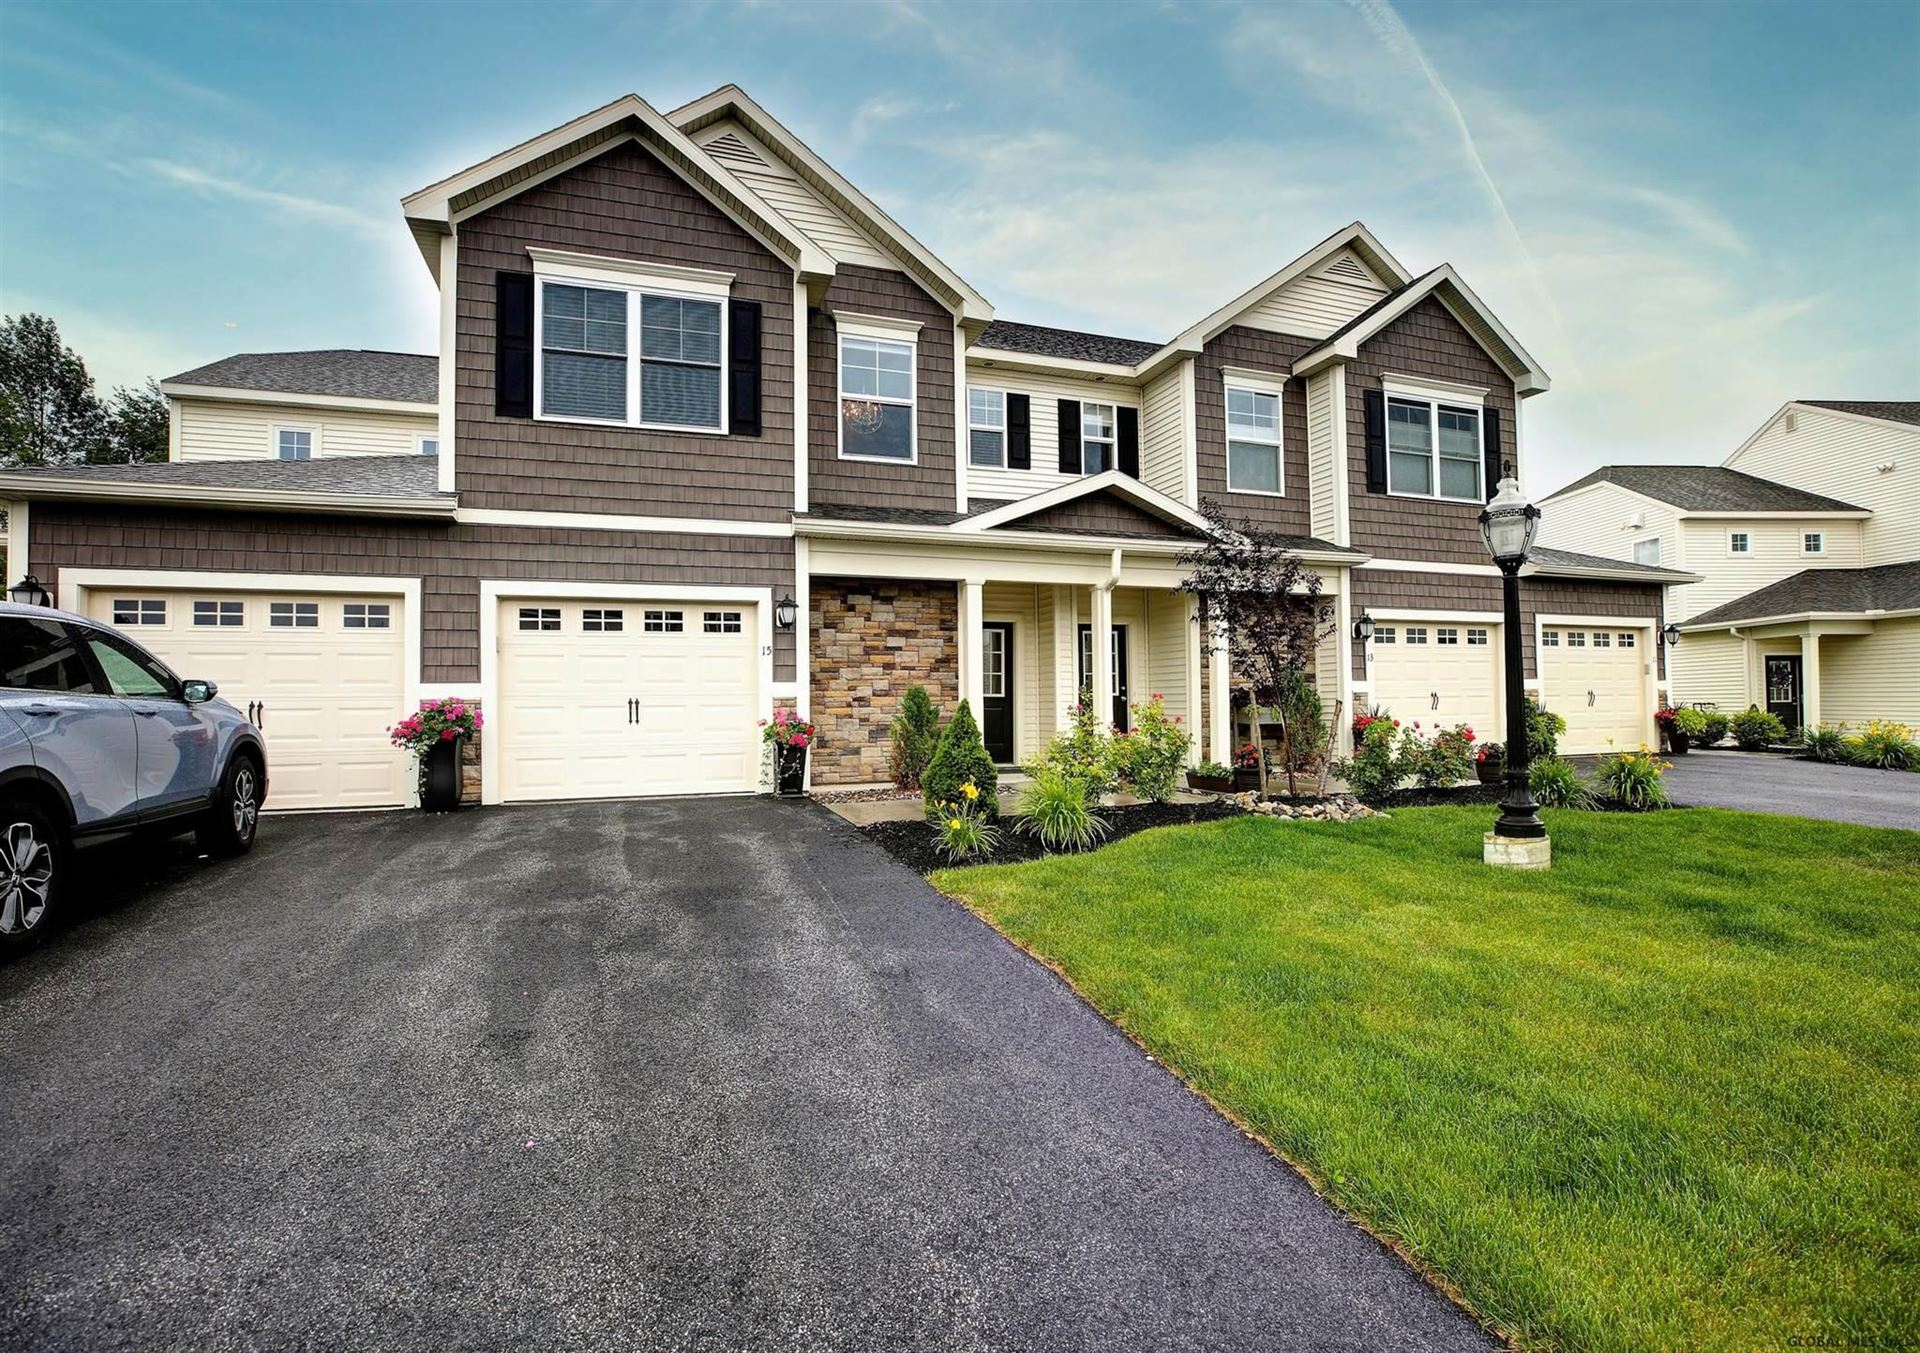 15 JARED CT, Cohoes, NY 12047 - #: 202122129